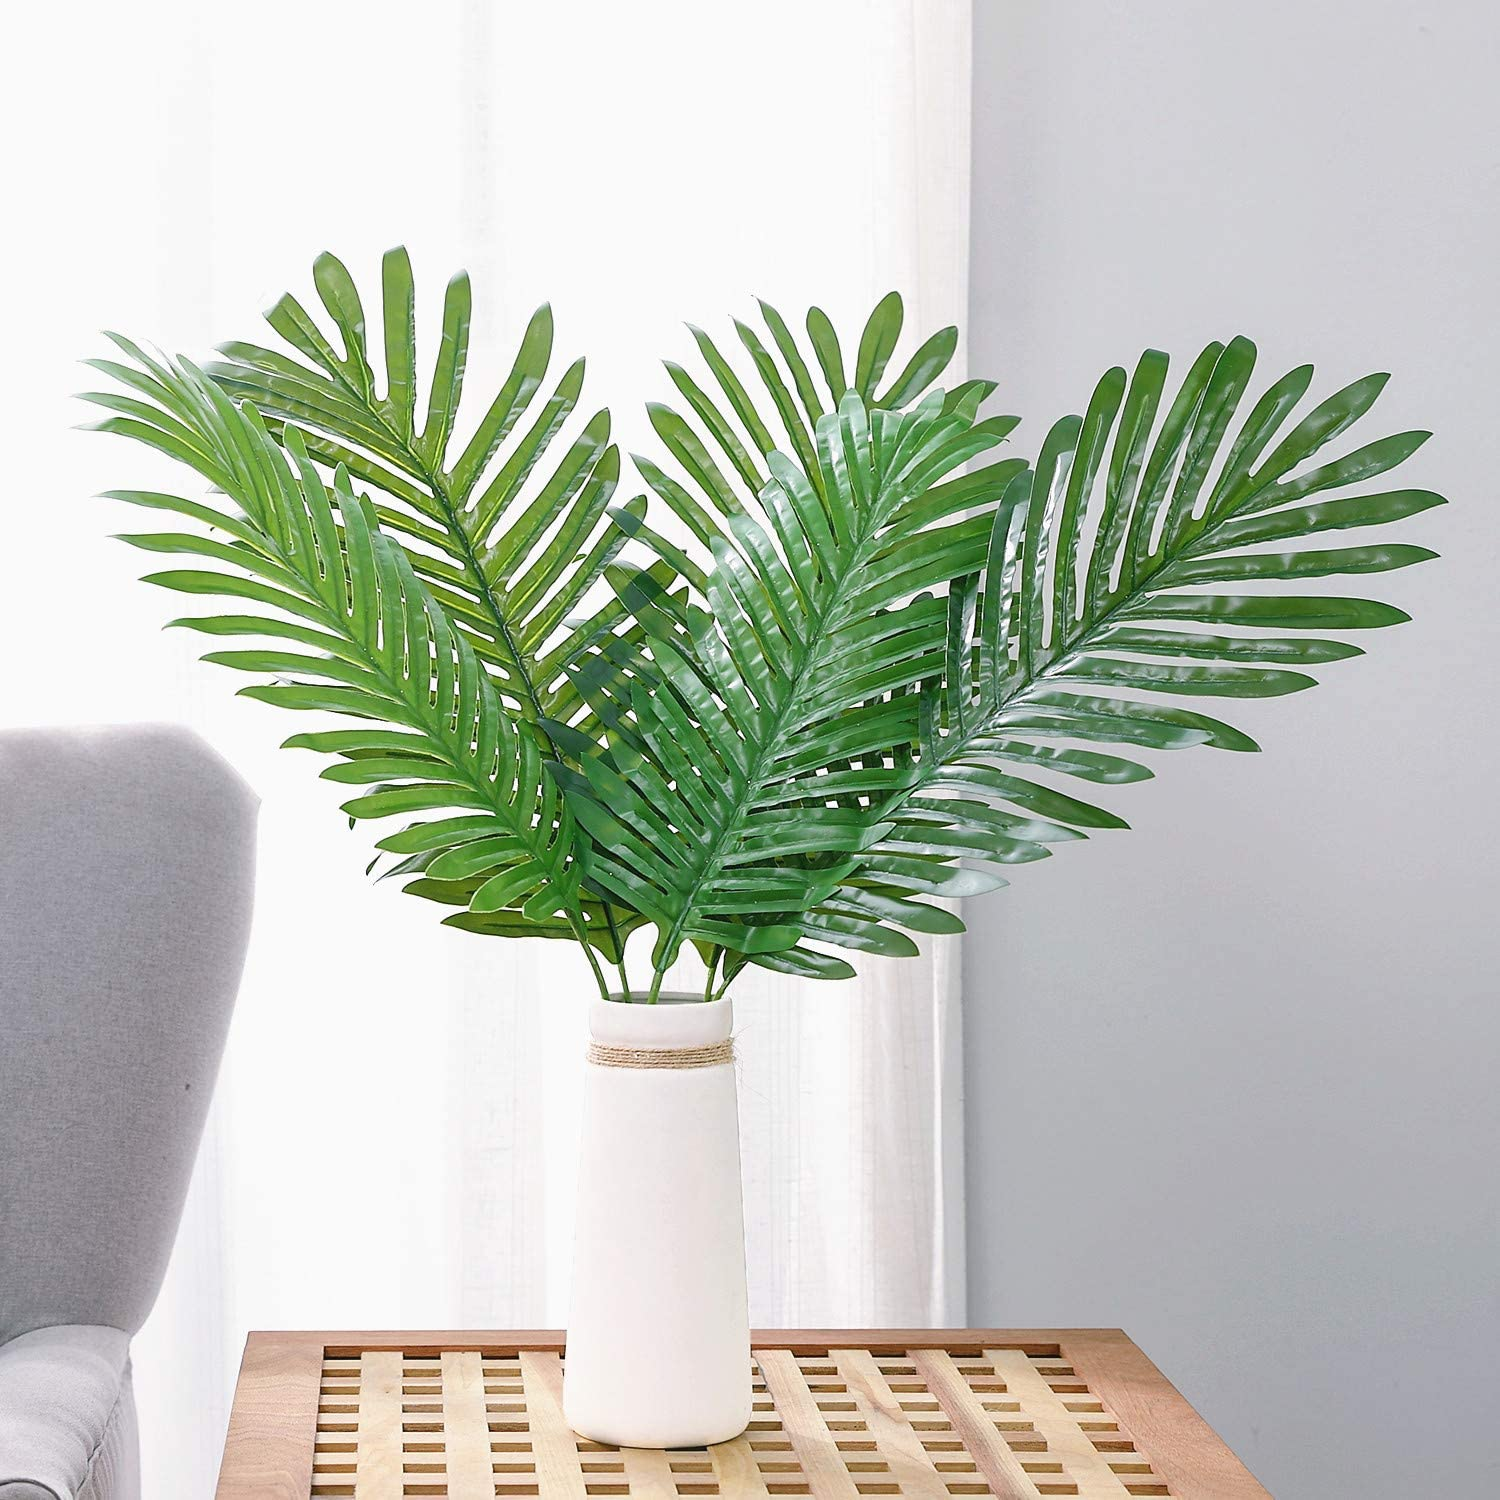 Olivachel Artificial Leaves Tropical Monstera Leaves Palm Tree Leaf Plant DIY Decorations for Home Kitchen Wedding Party (Palm Leaves - 5Pcs/Pack)